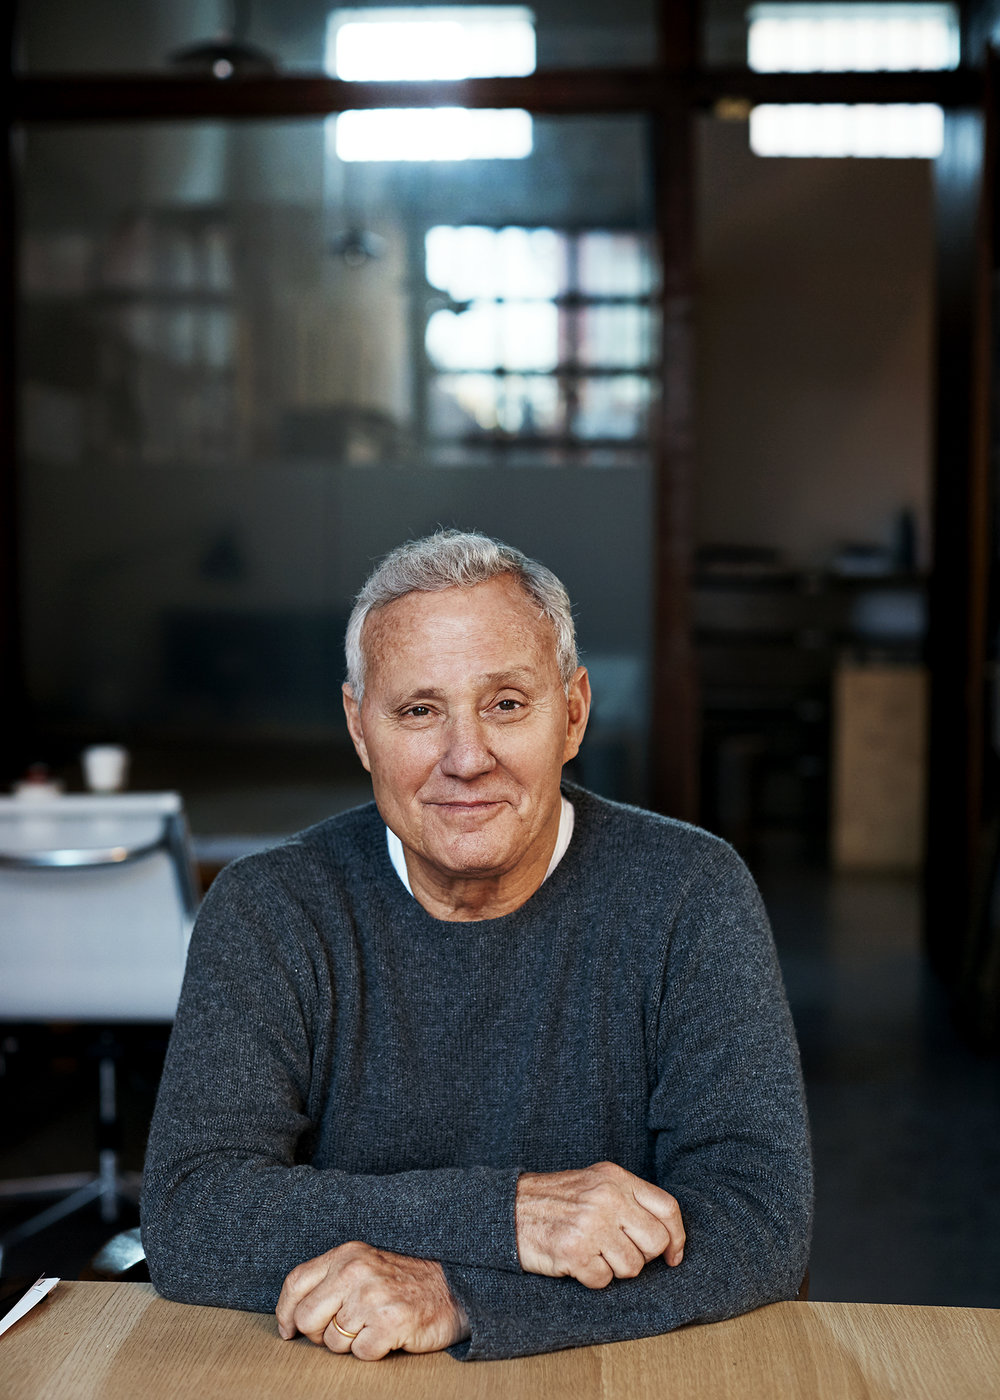 Ian-Schrager-by_Weston-Wells.jpg